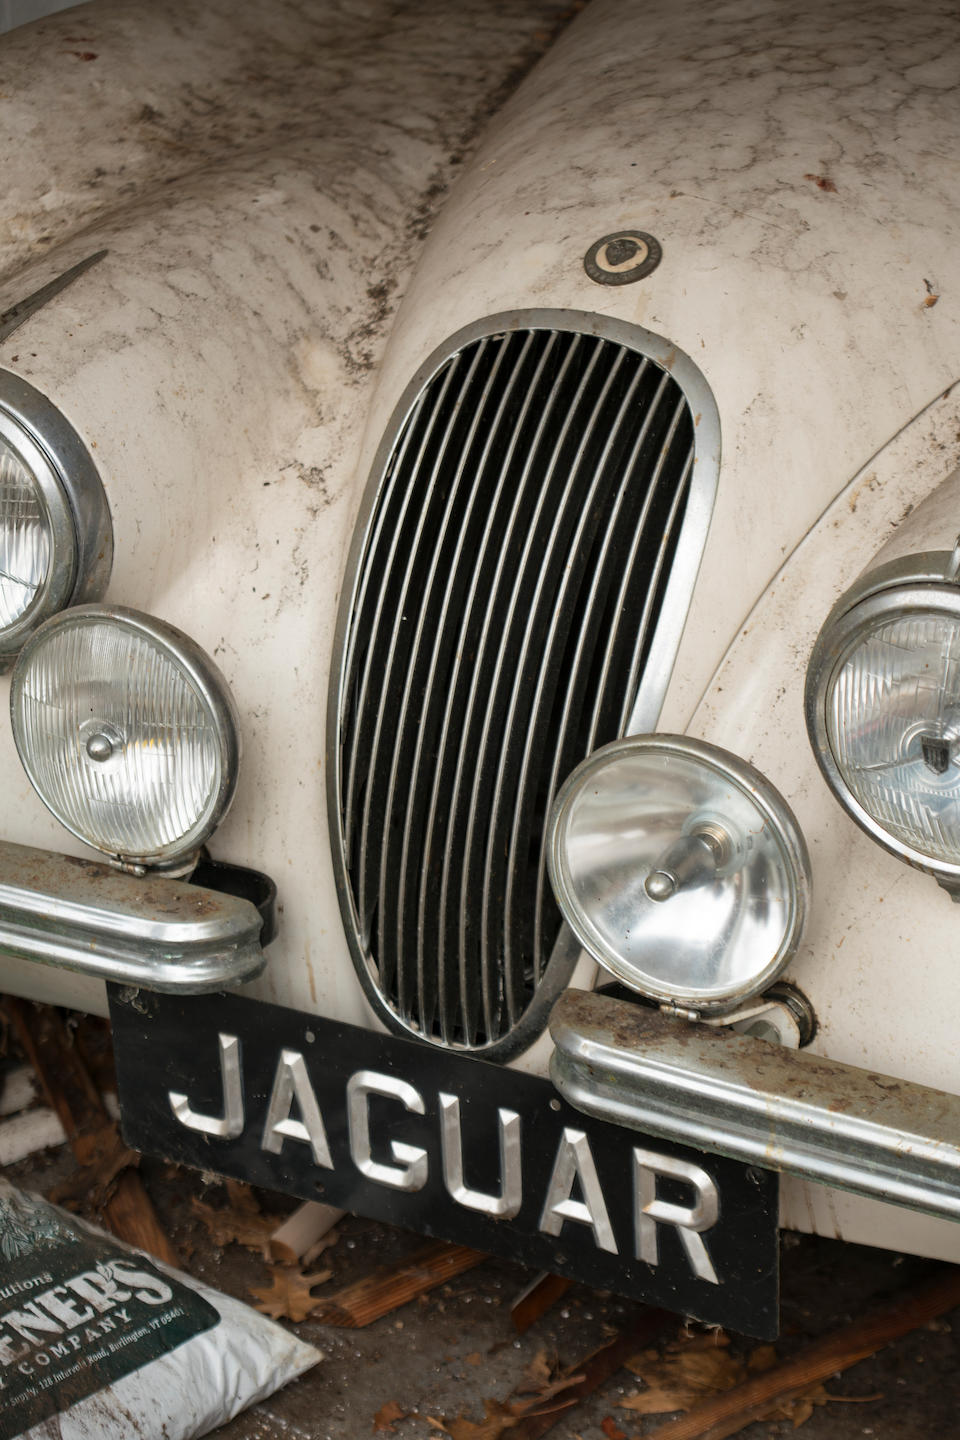 <b>1952 Jaguar XK120 Fixed Head Coupe</b><br />Chassis no. 679265<br />Engine no. W4087-8